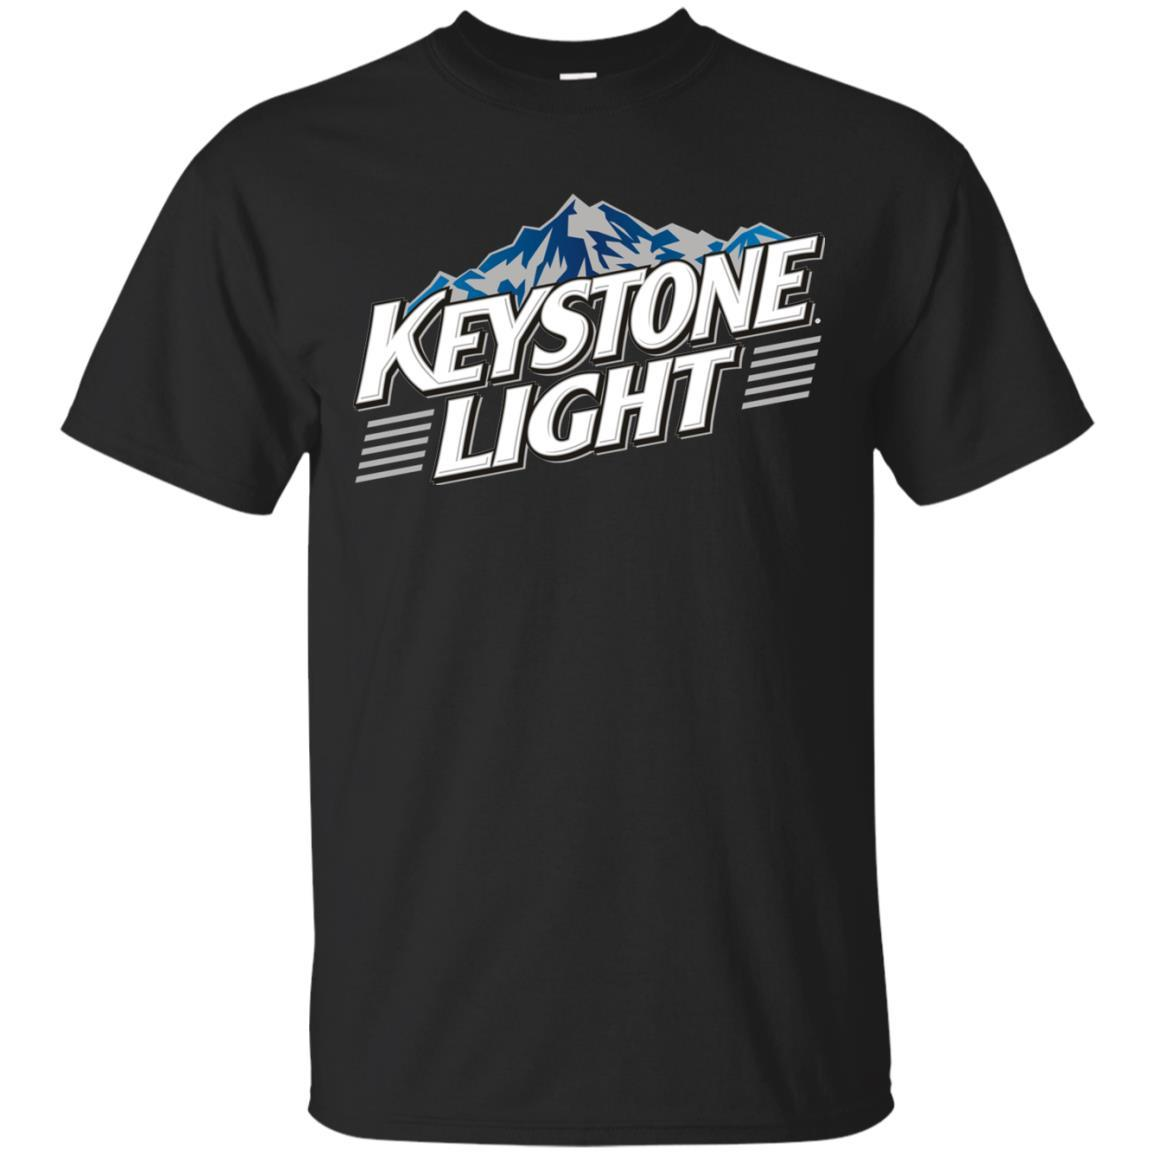 Keystone Light Beer - T-Shirt, Pullover Hoodie